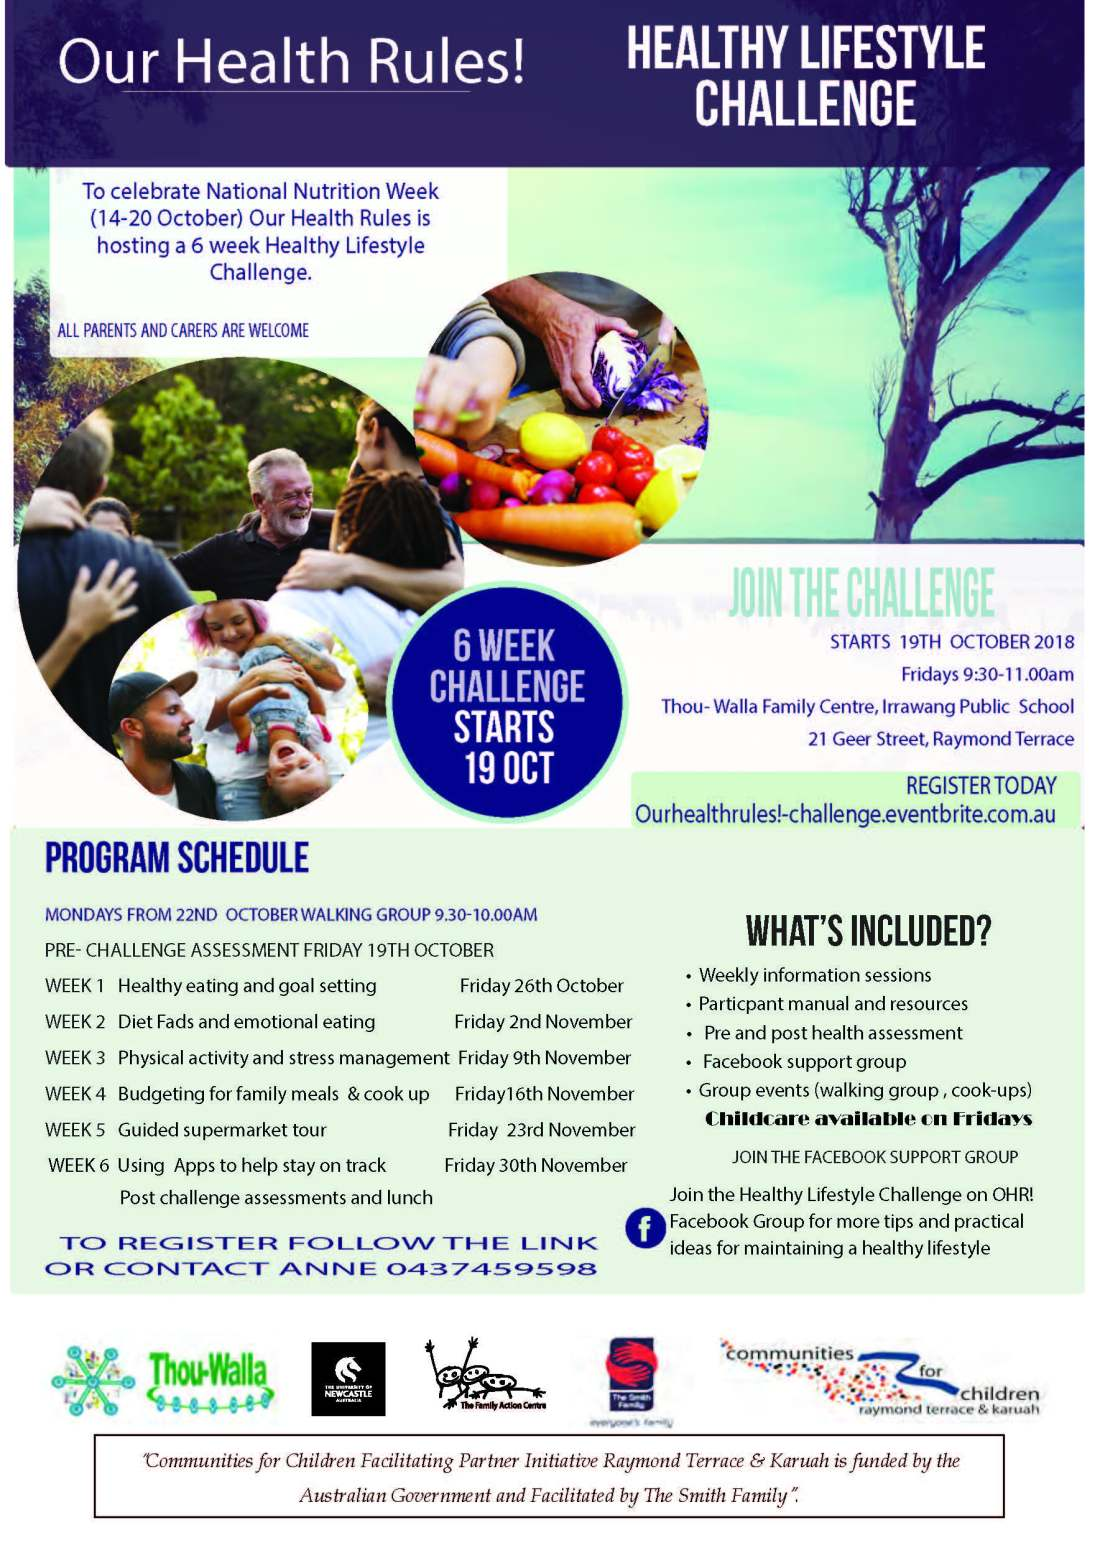 OHR Healthy Lifestyle Challenge Flyer reduced size